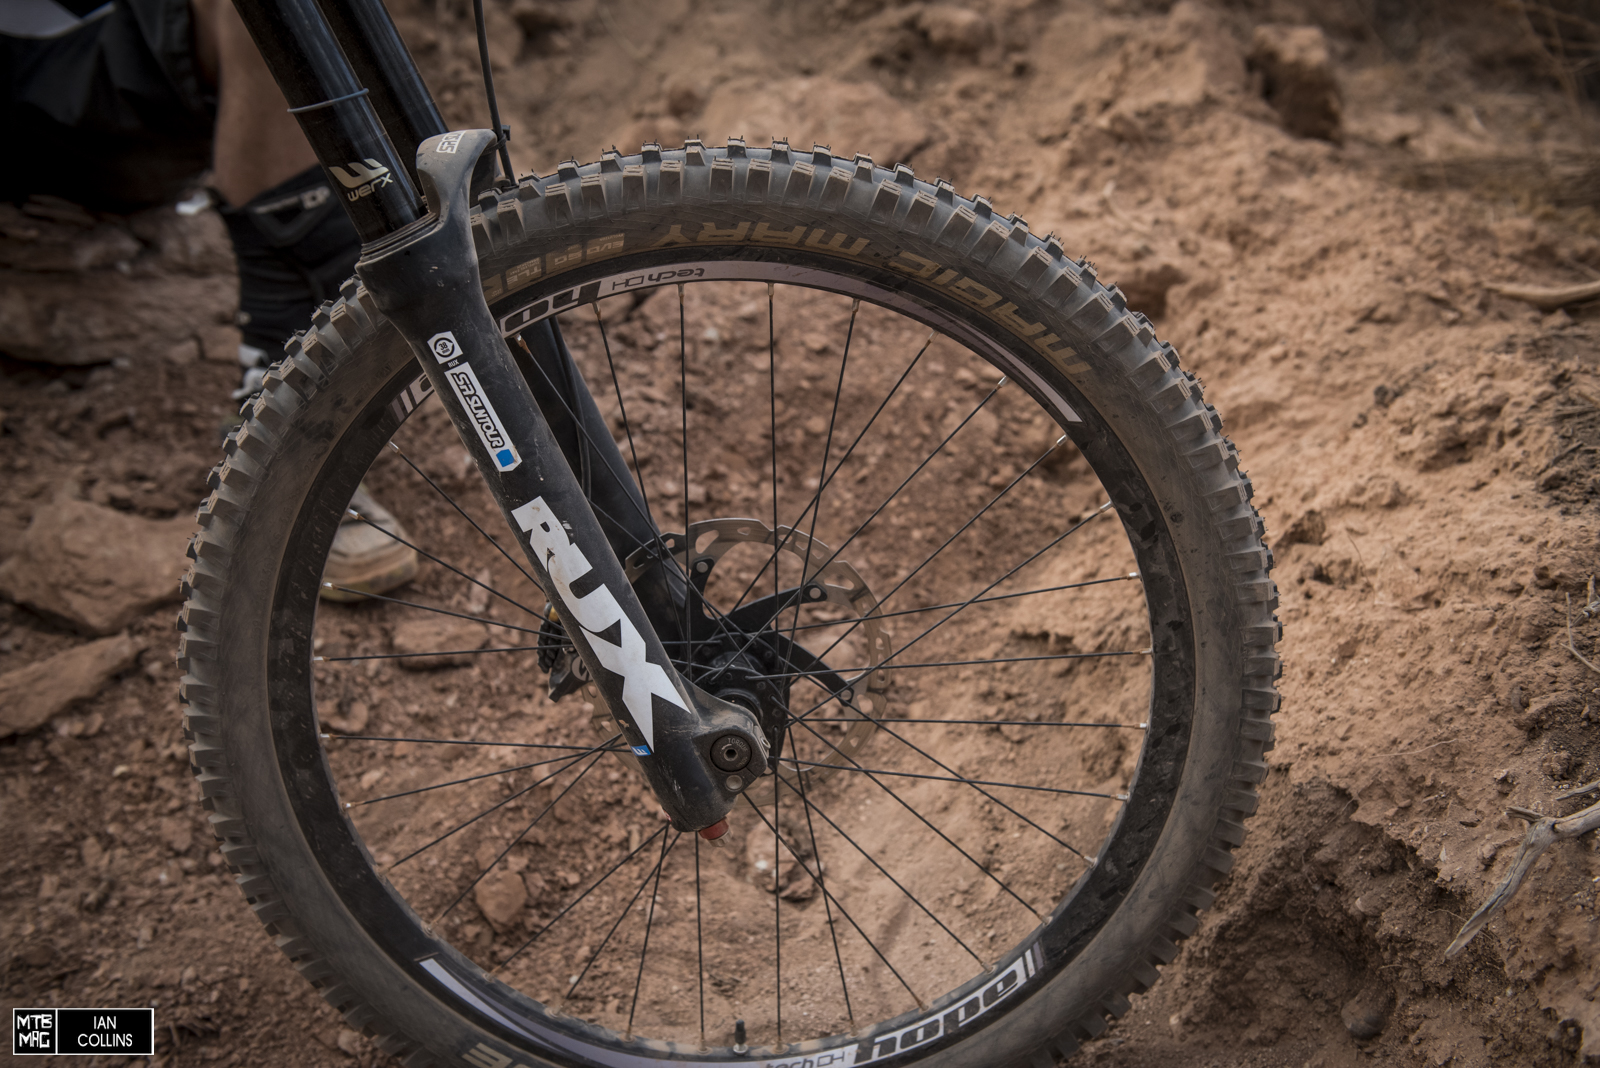 Suntour Rux.  The latest version of this fork is starting to look quite refined.  James Doerfling also rides on and seems to be loving it.  Hope wheels rolling on Schwalbe Muddy Mary tires in 2.35.